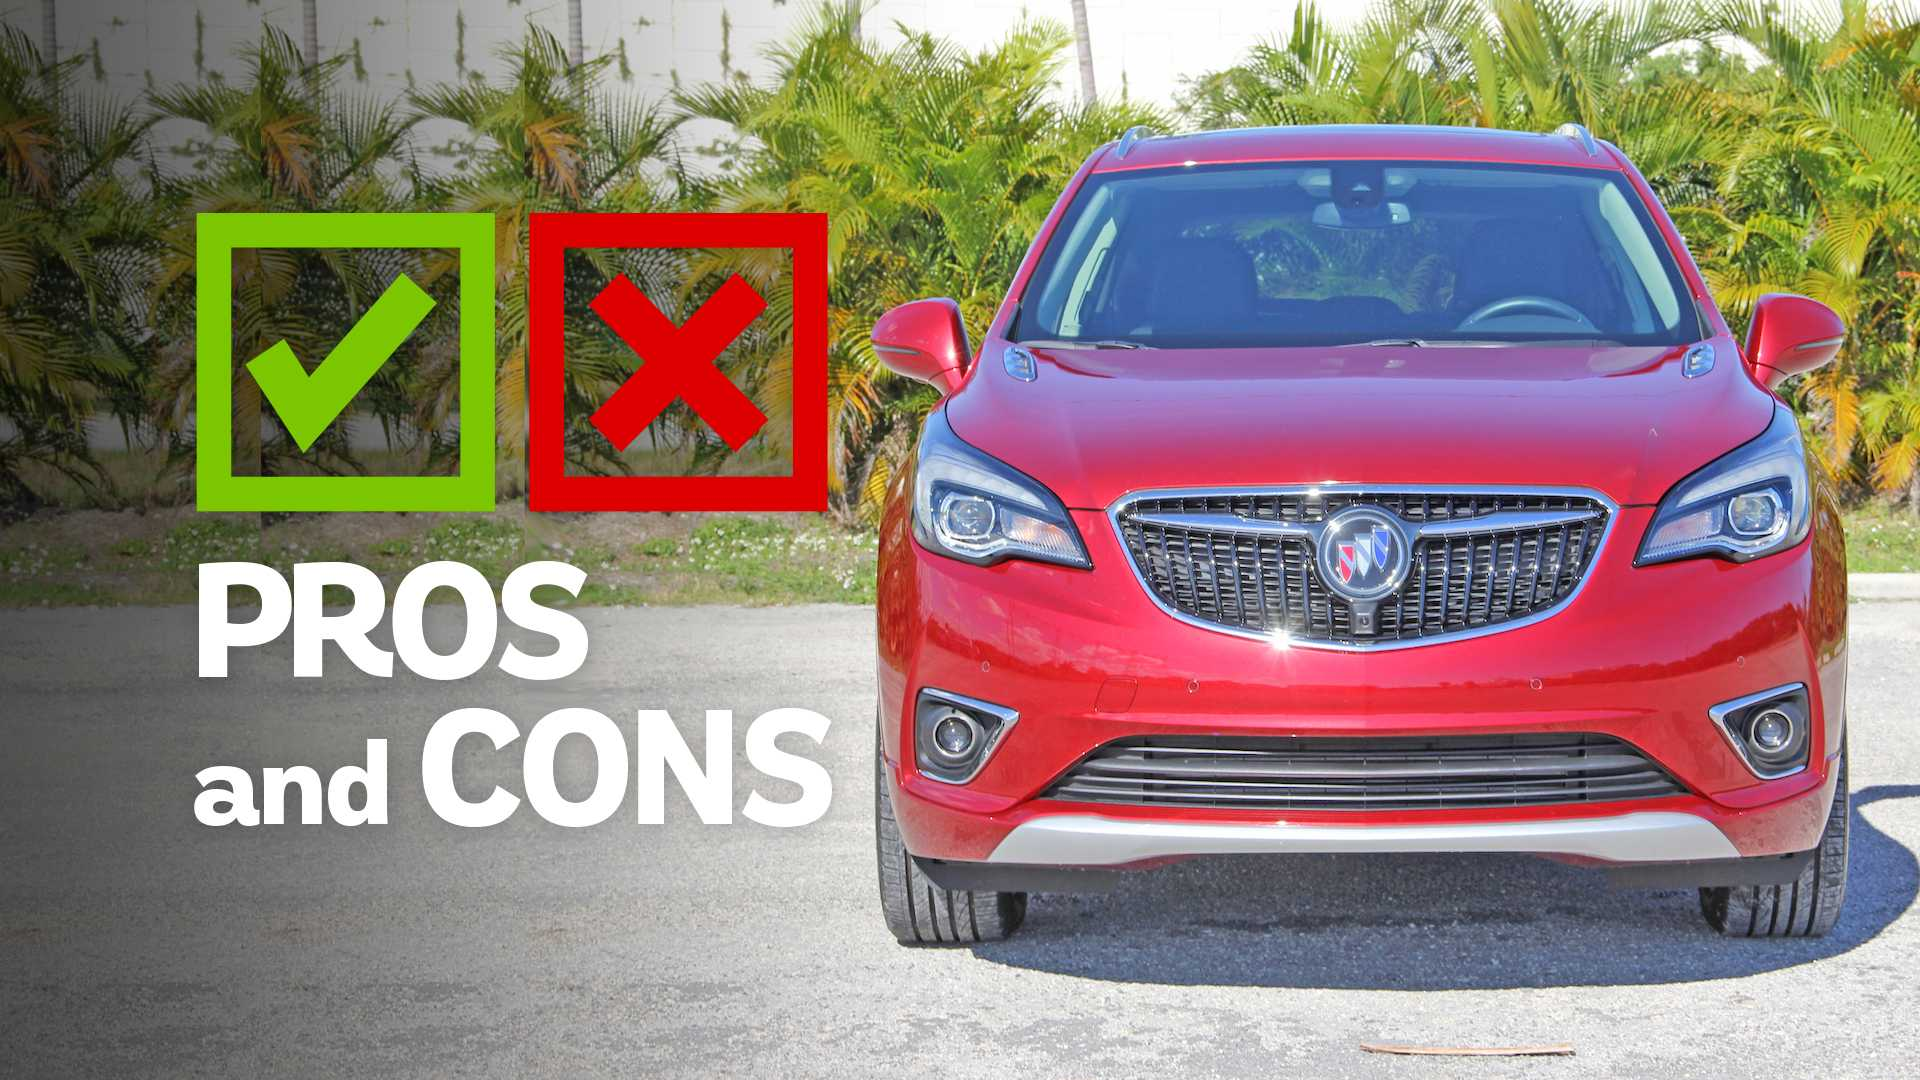 43 Concept of New 2019 Buick Envision Updates New Review New Review for New 2019 Buick Envision Updates New Review